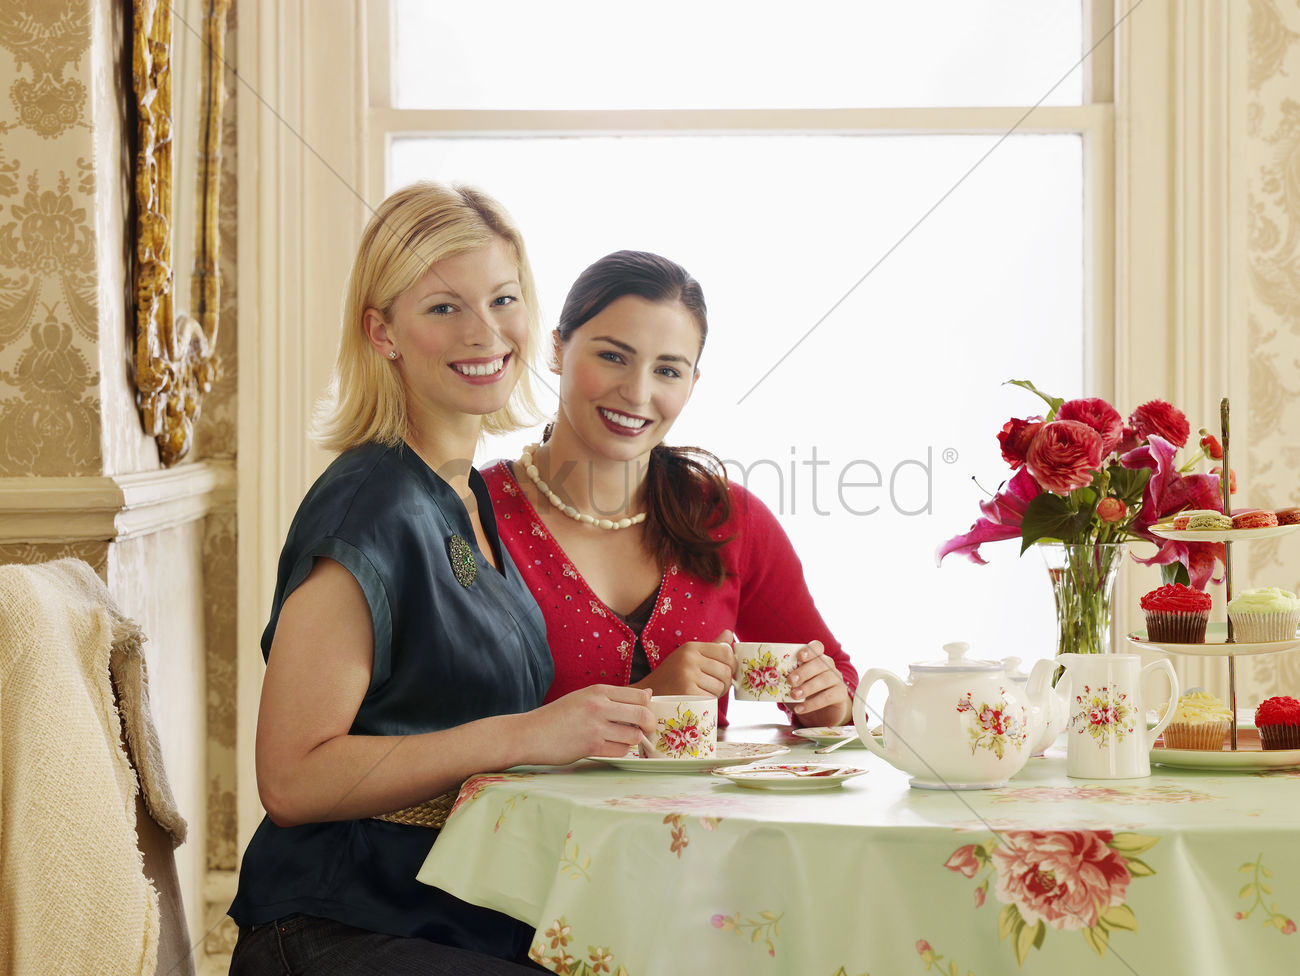 two young women sitting at dining table drinking tea portrait stock photo b323af23d